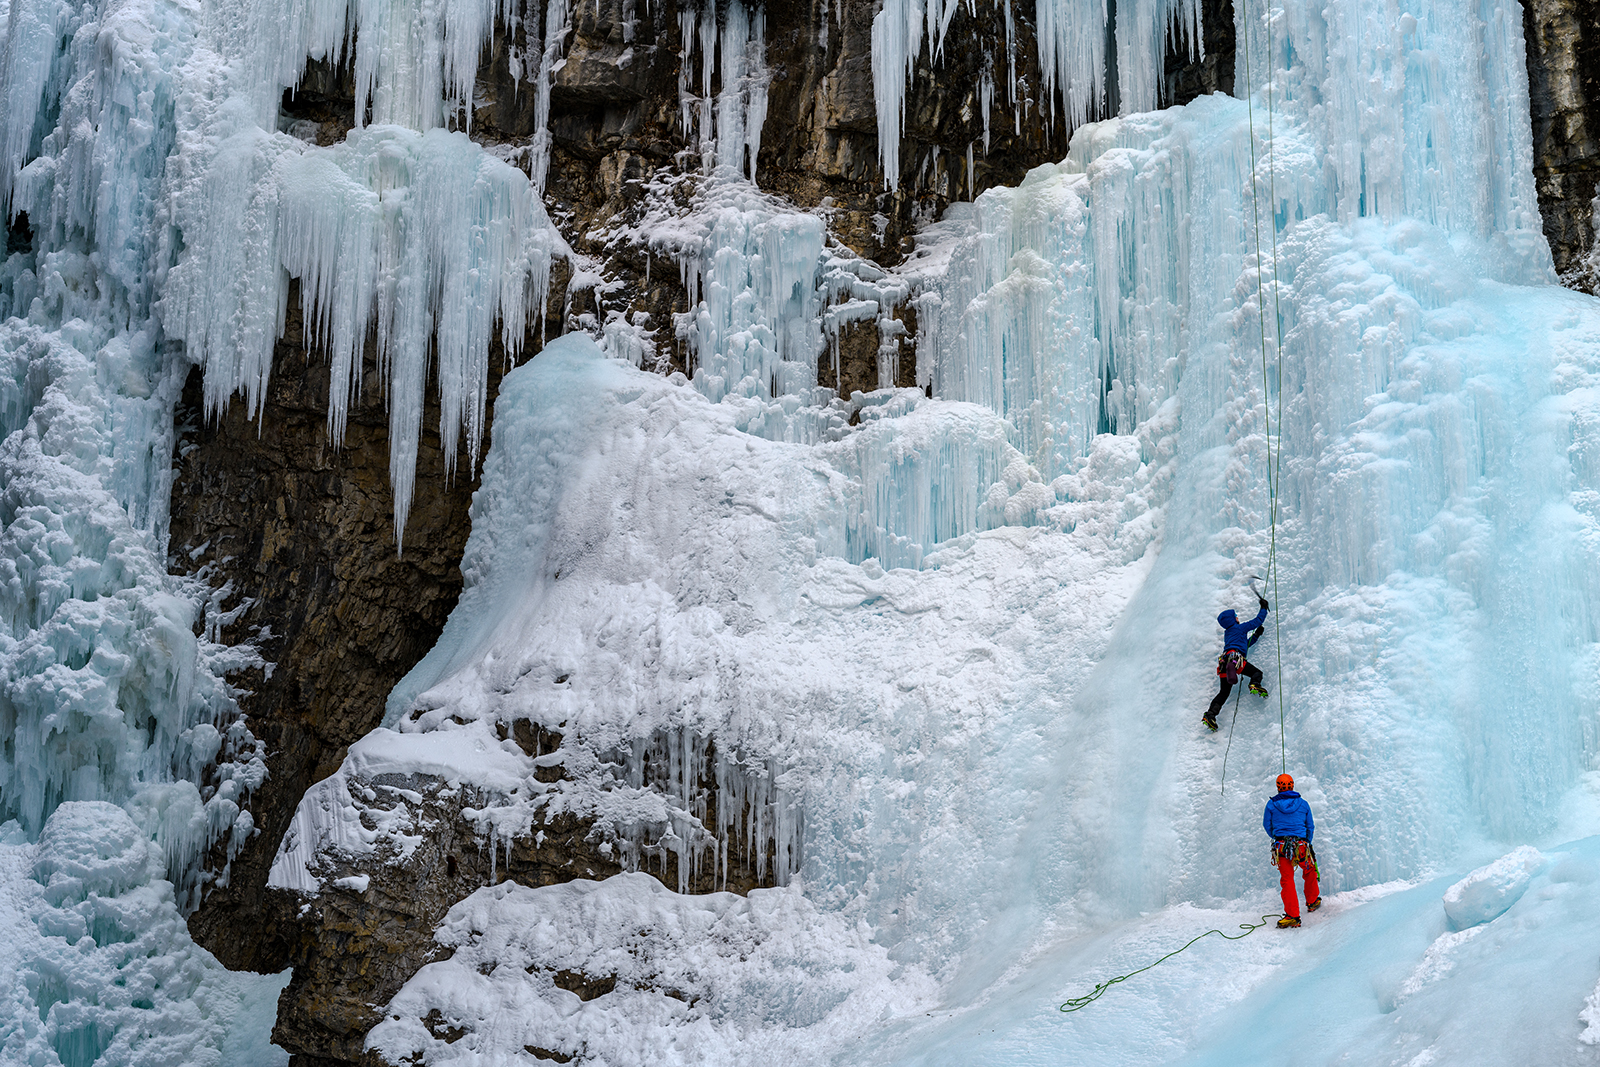 Ice climbers at Johnston Canyon, Banff National Park. Photo by Ferenc Cegledi